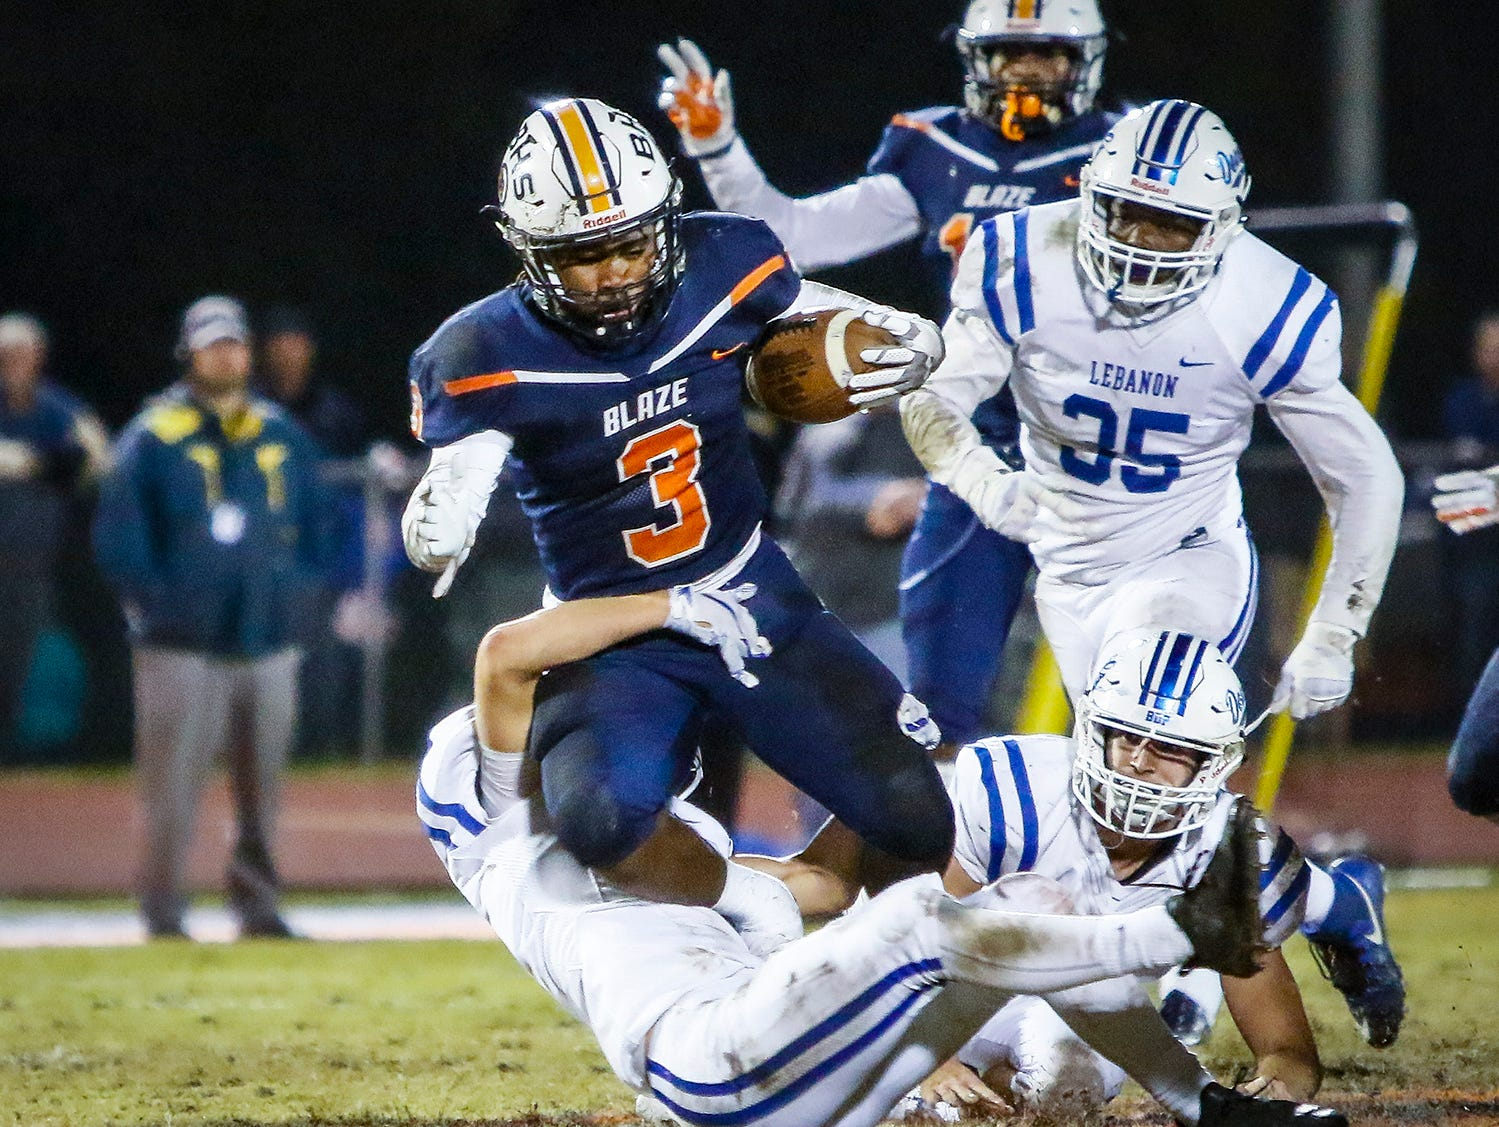 Lebanon's Levi Sampson tackles Blackman's Tamicus Napier during Friday's 6A playoff game.